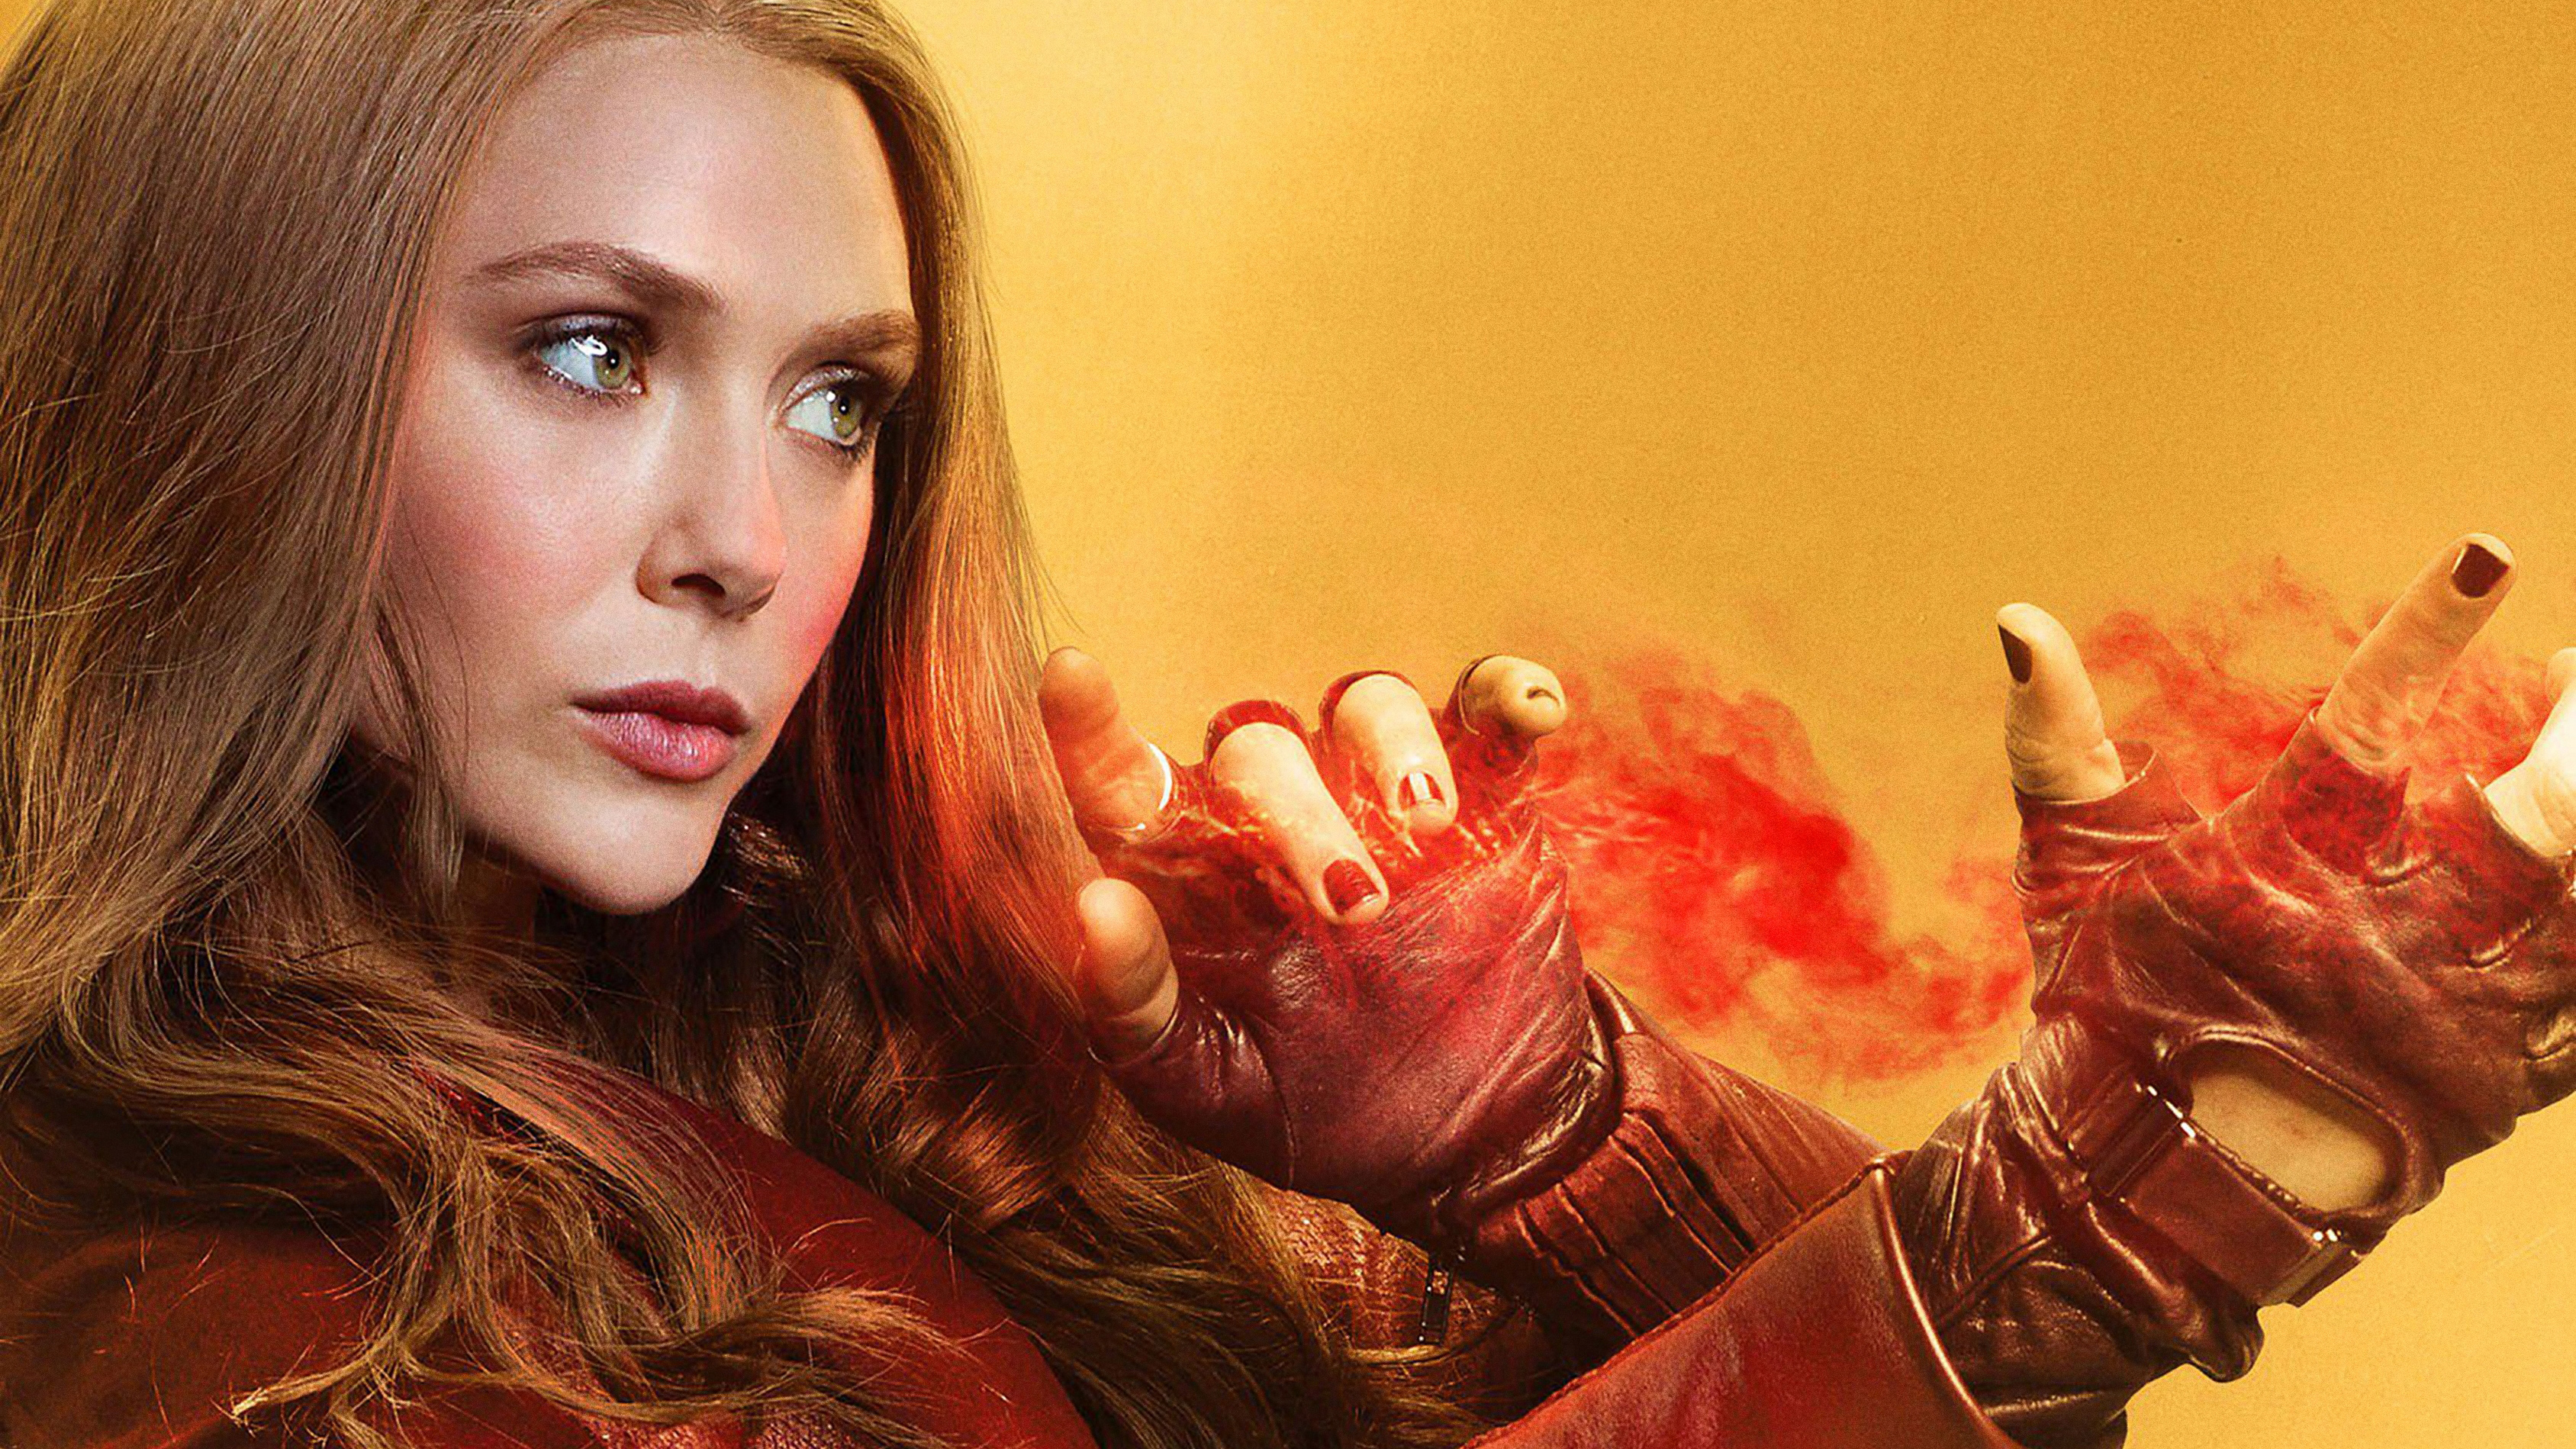 Scarlet Witch Hd Wallpaper Background Image 3376x1899 Id